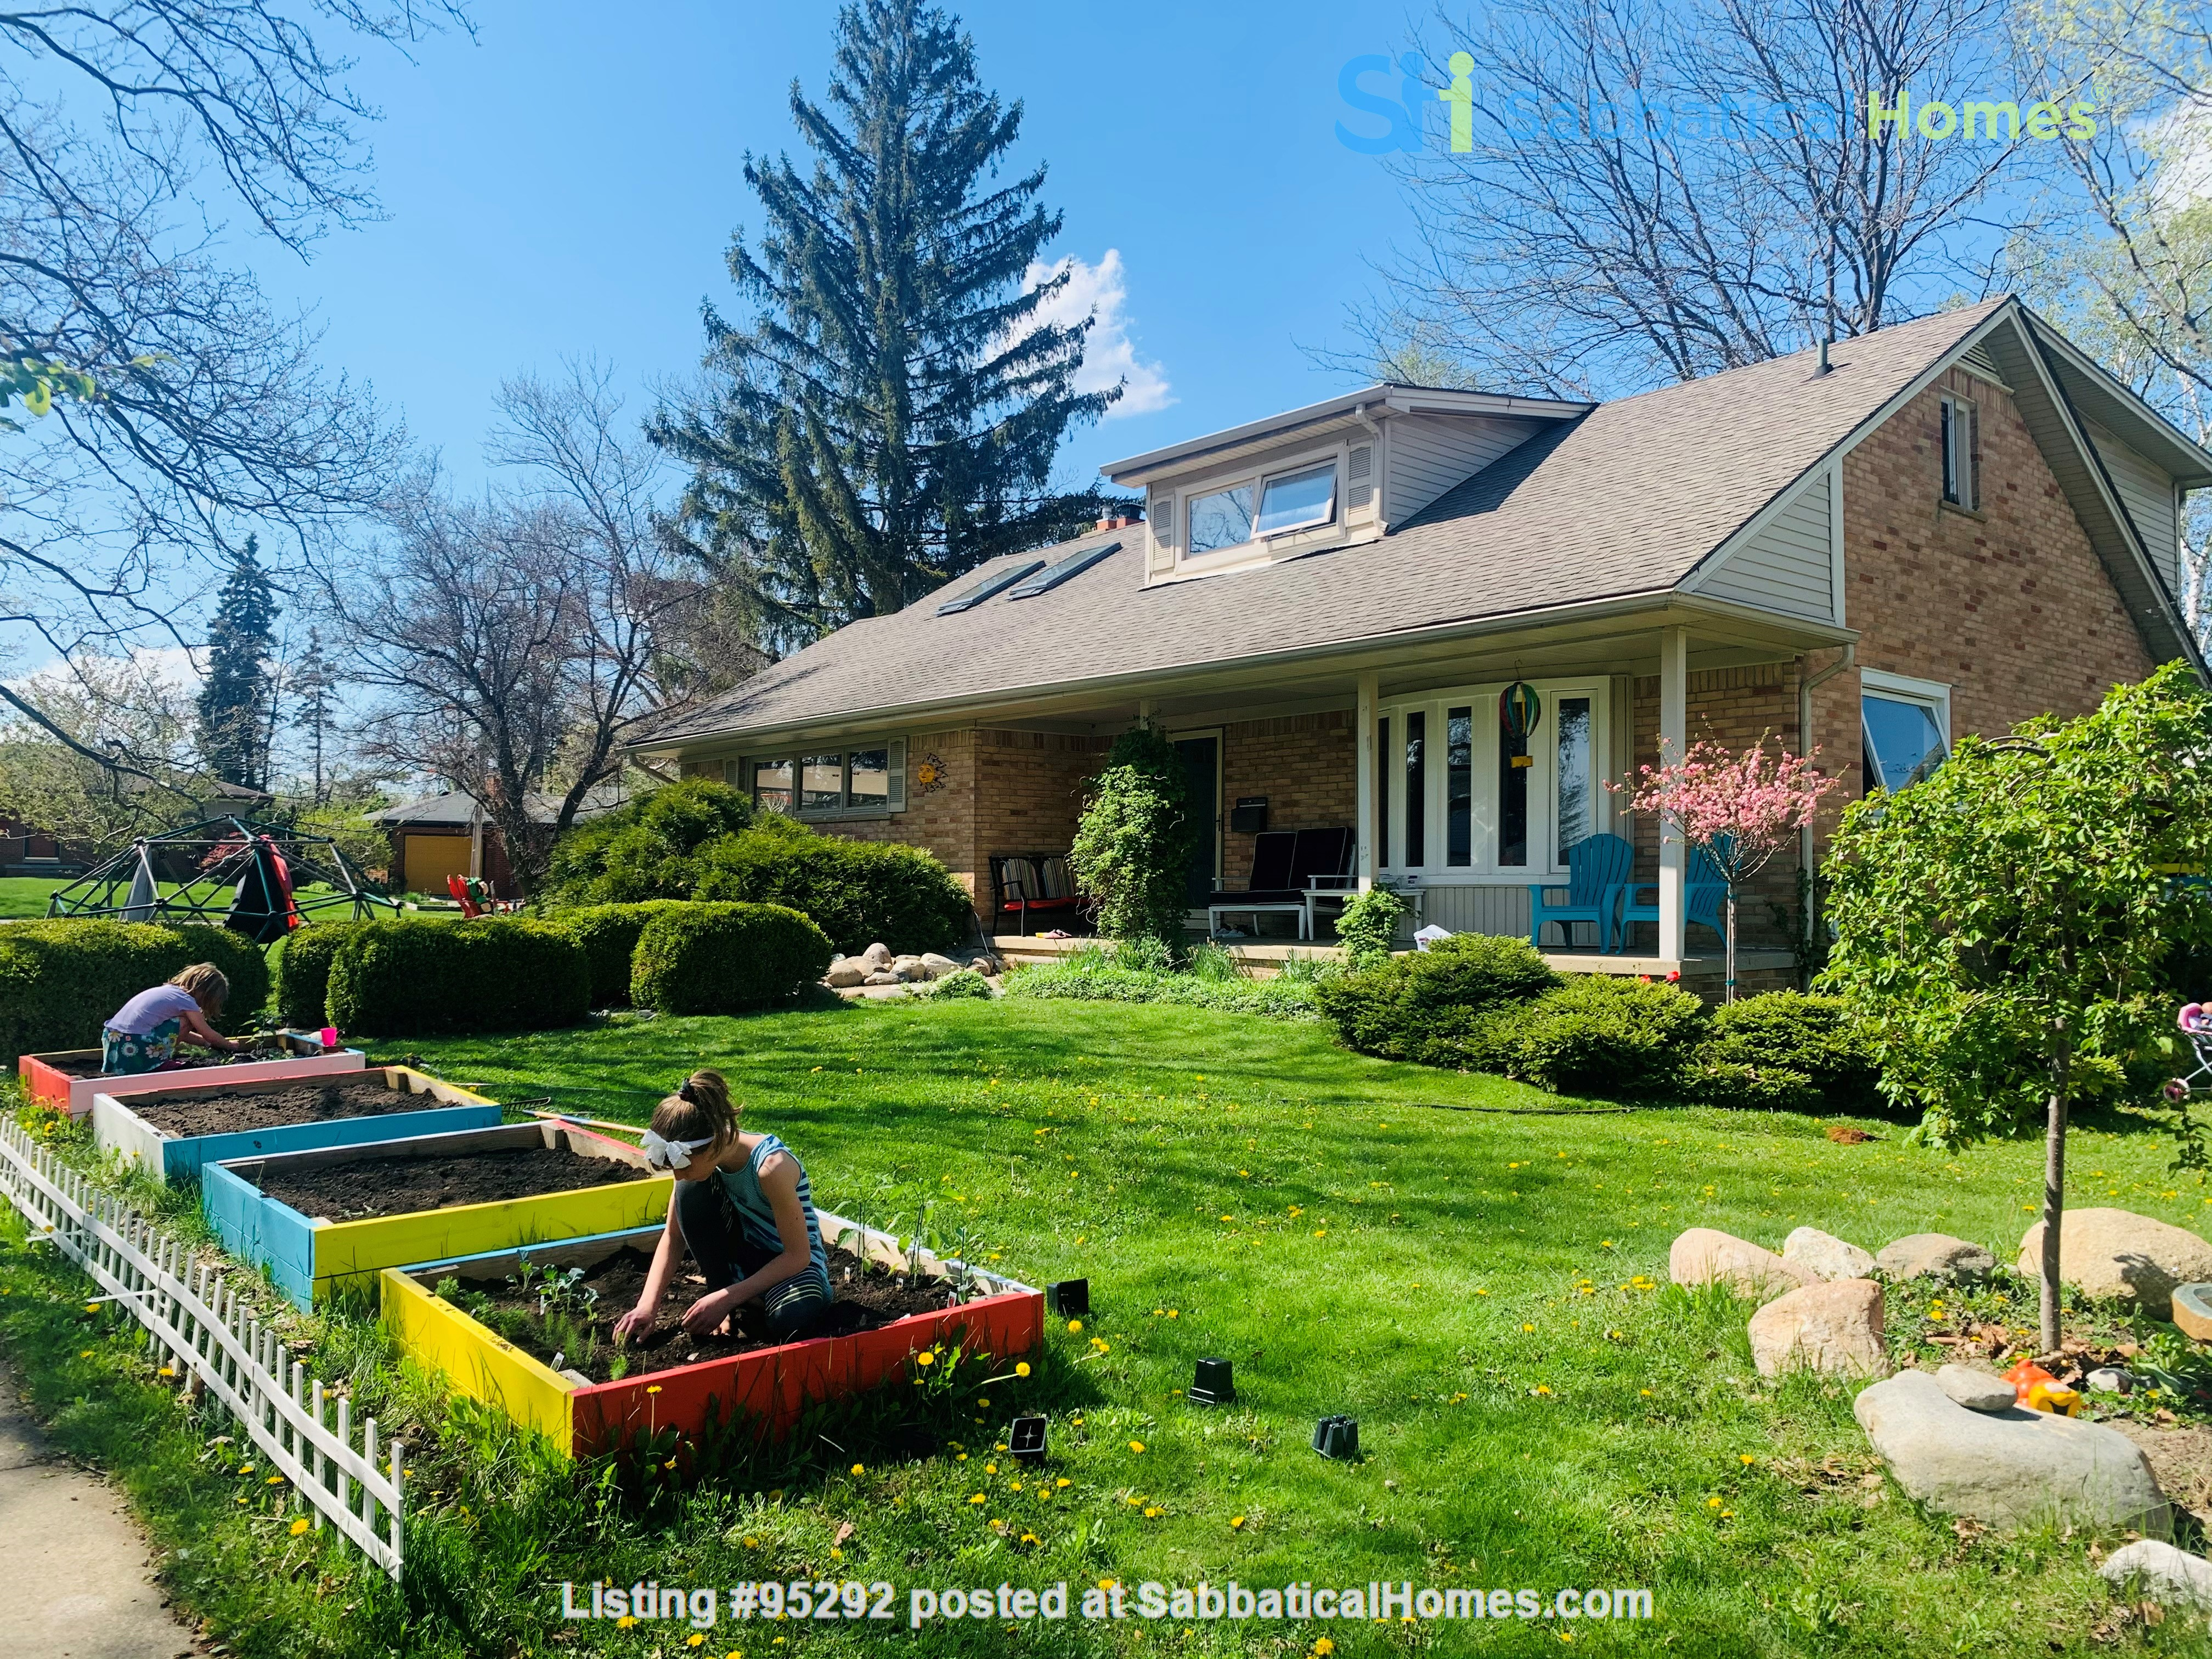 Beautiful Family House on the West Side 10-12 months (Aug 2021 - Aug 2022) Home Rental in Ann Arbor, Michigan, United States 0